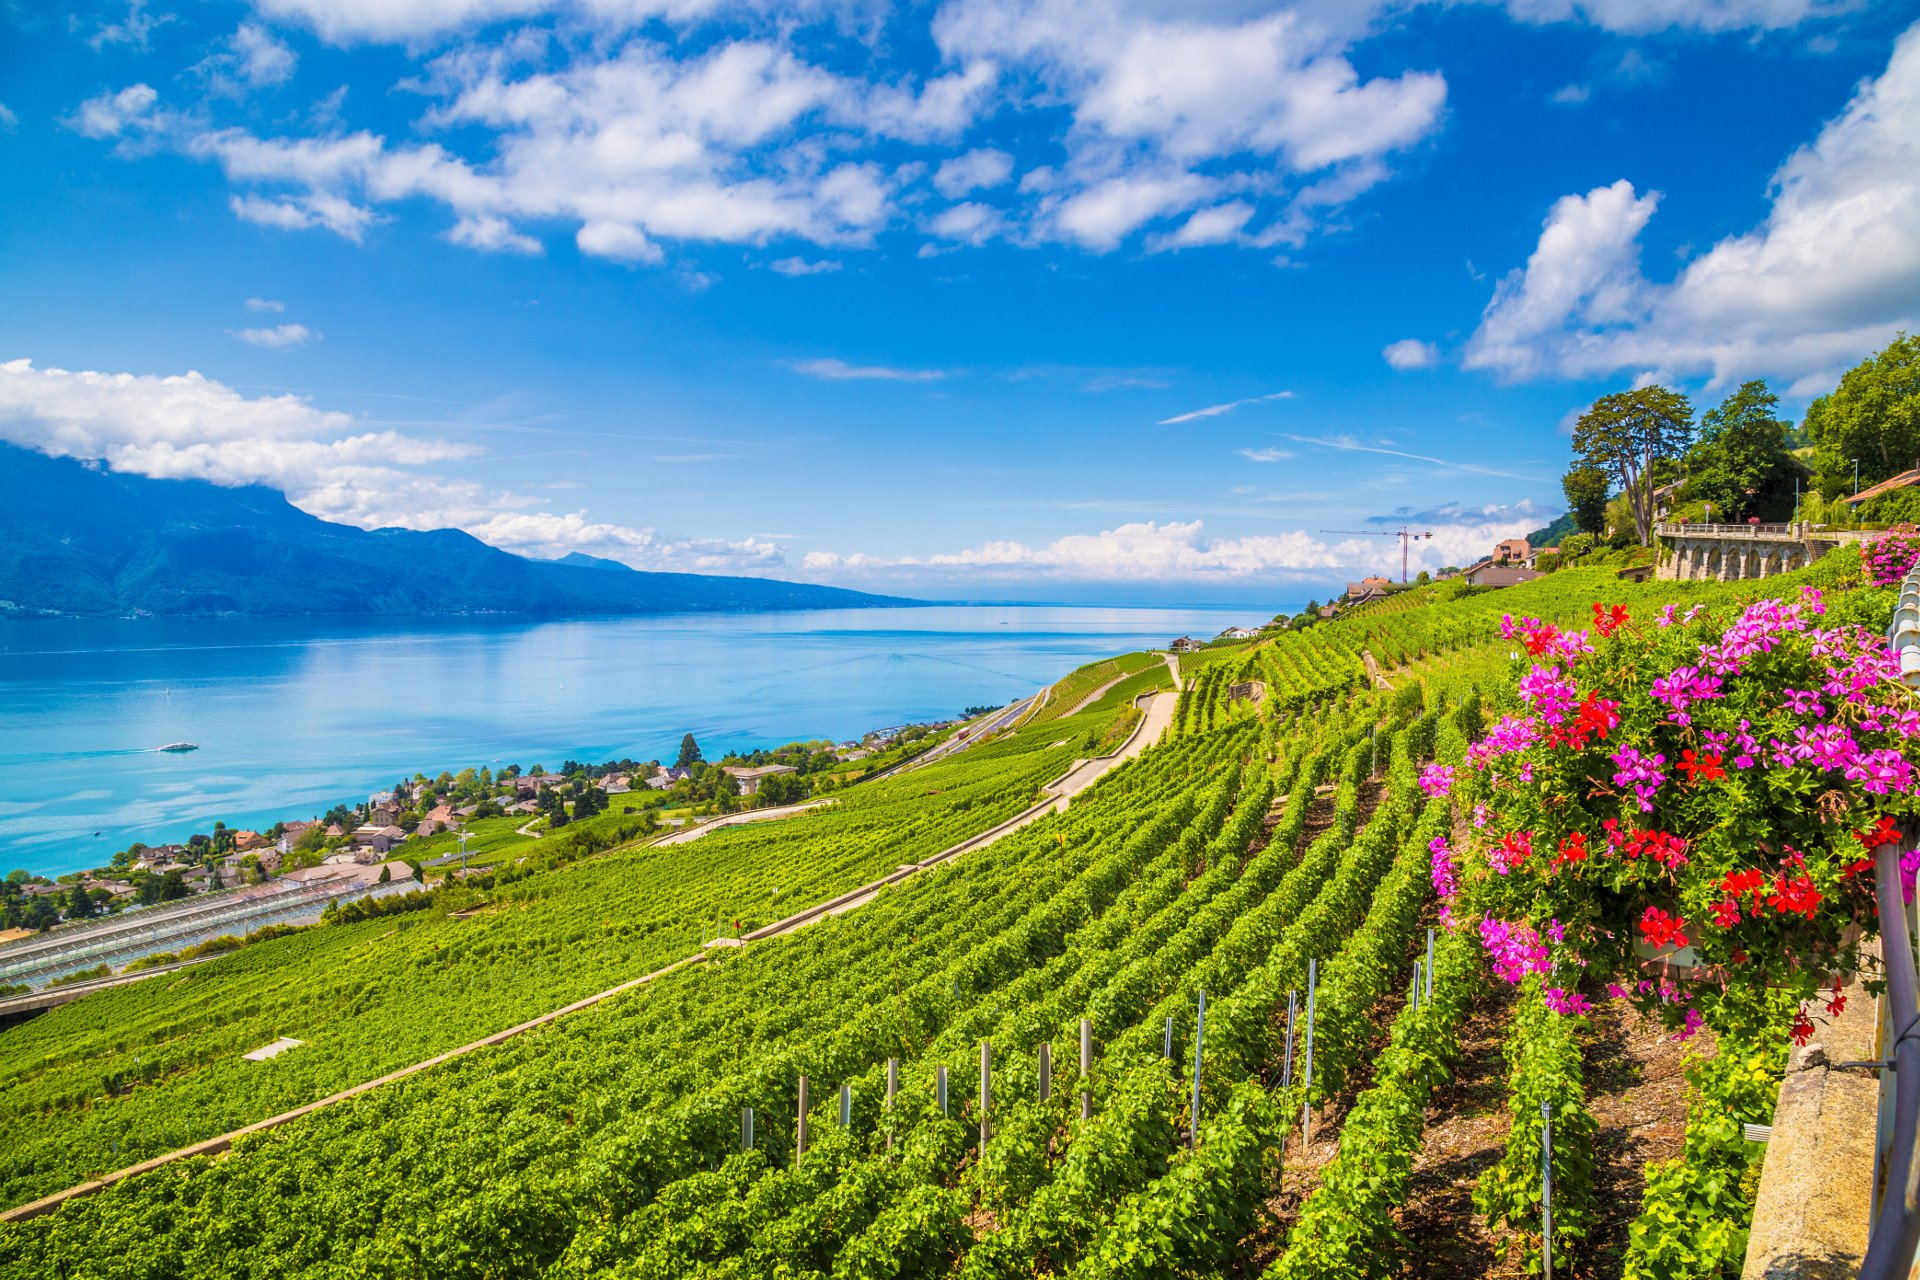 vines-wine tasting-private tour-Lavaux-Switzerland-Geneva Lake